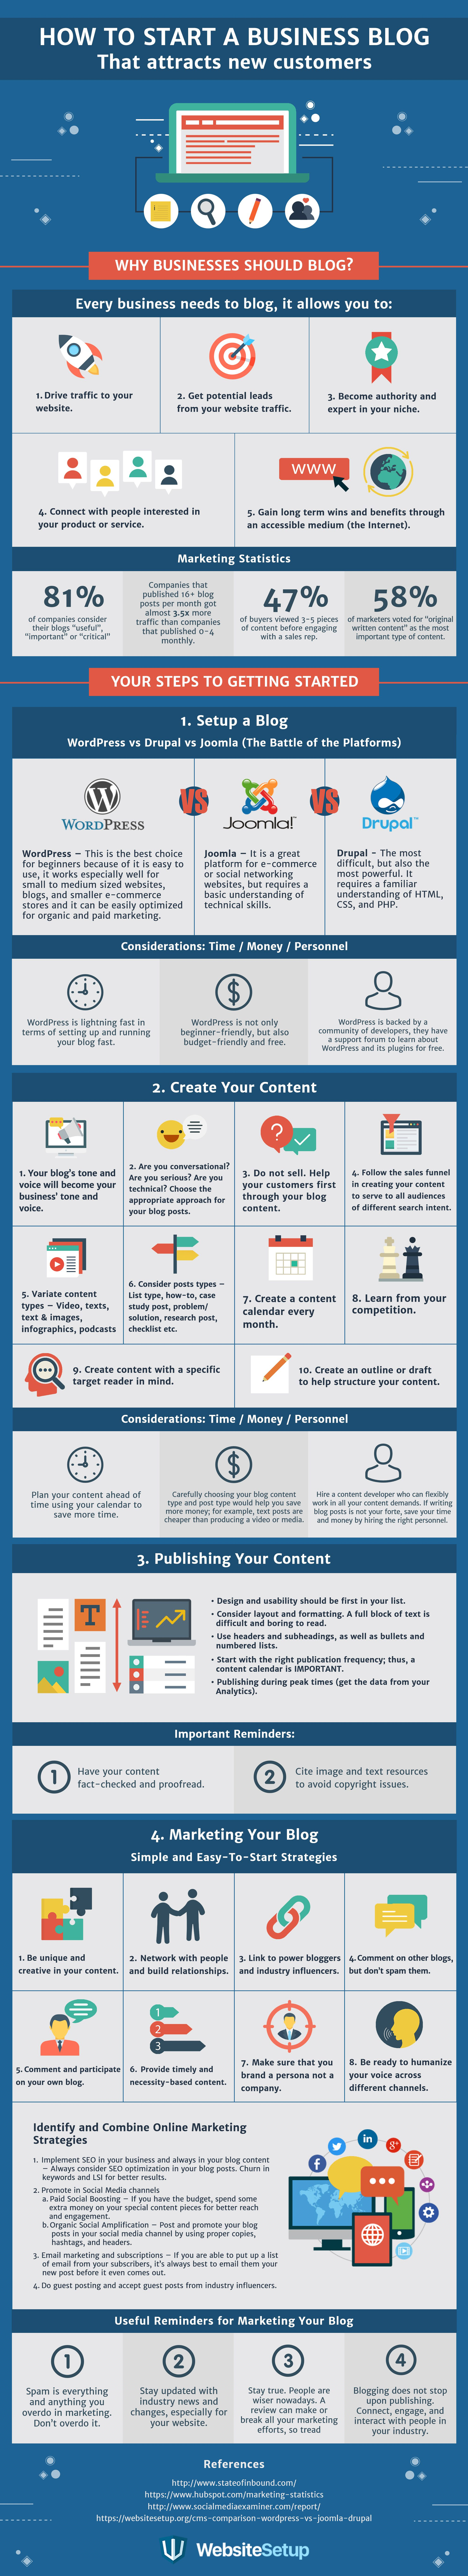 How To Start a Business Blog [Infographic]